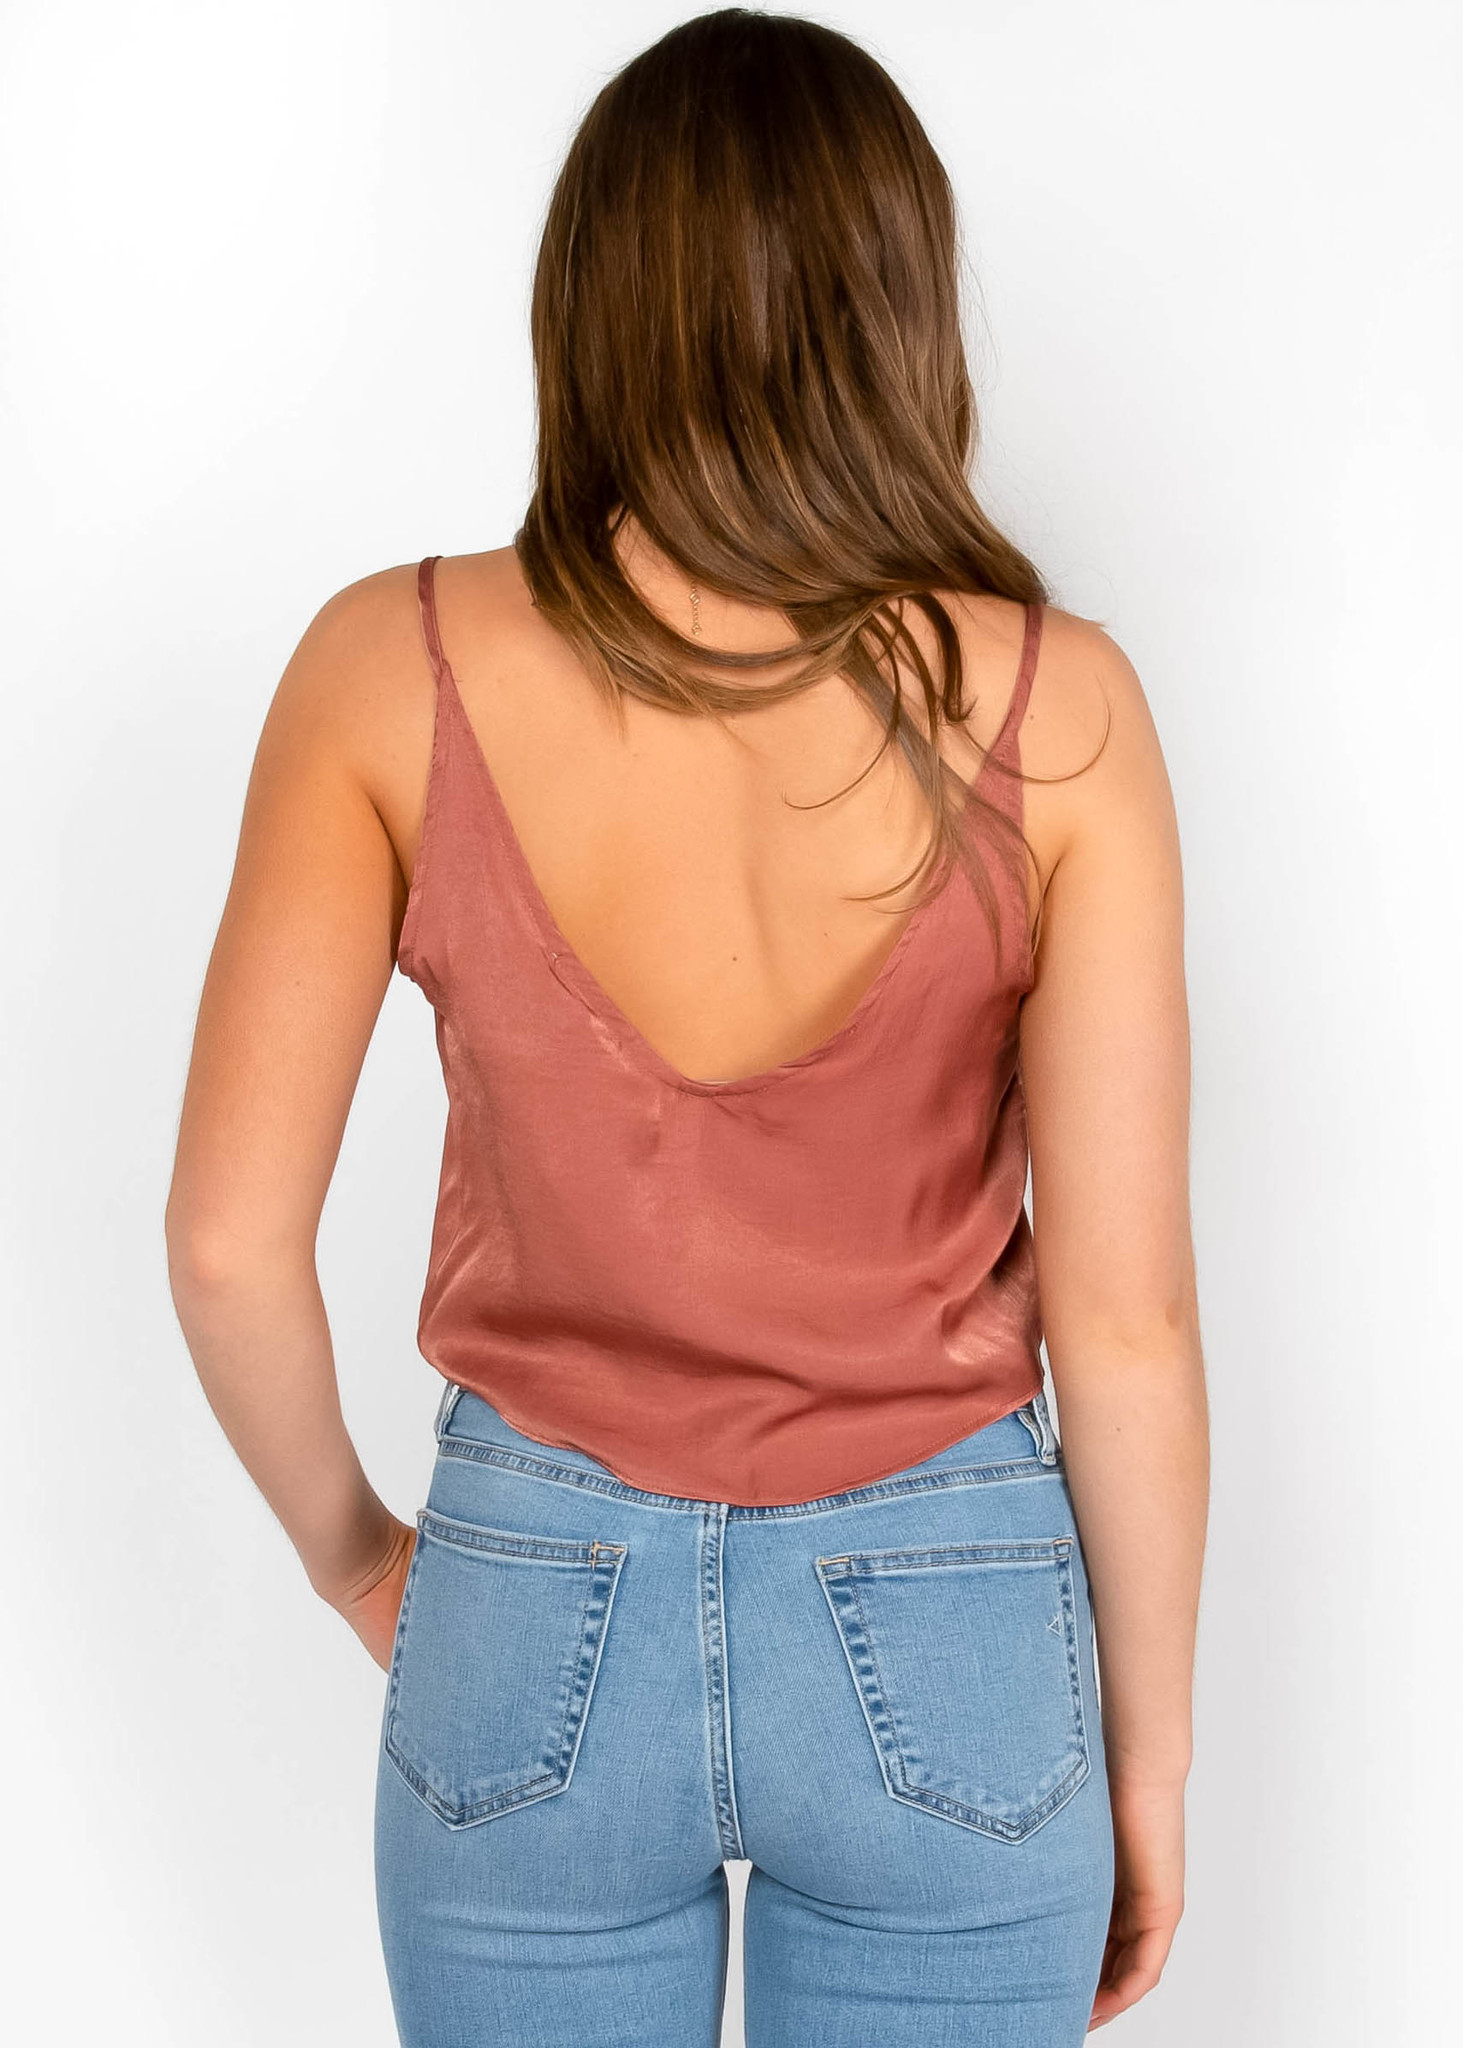 MIAMI FRONT TIE TANK TOP - COPPER